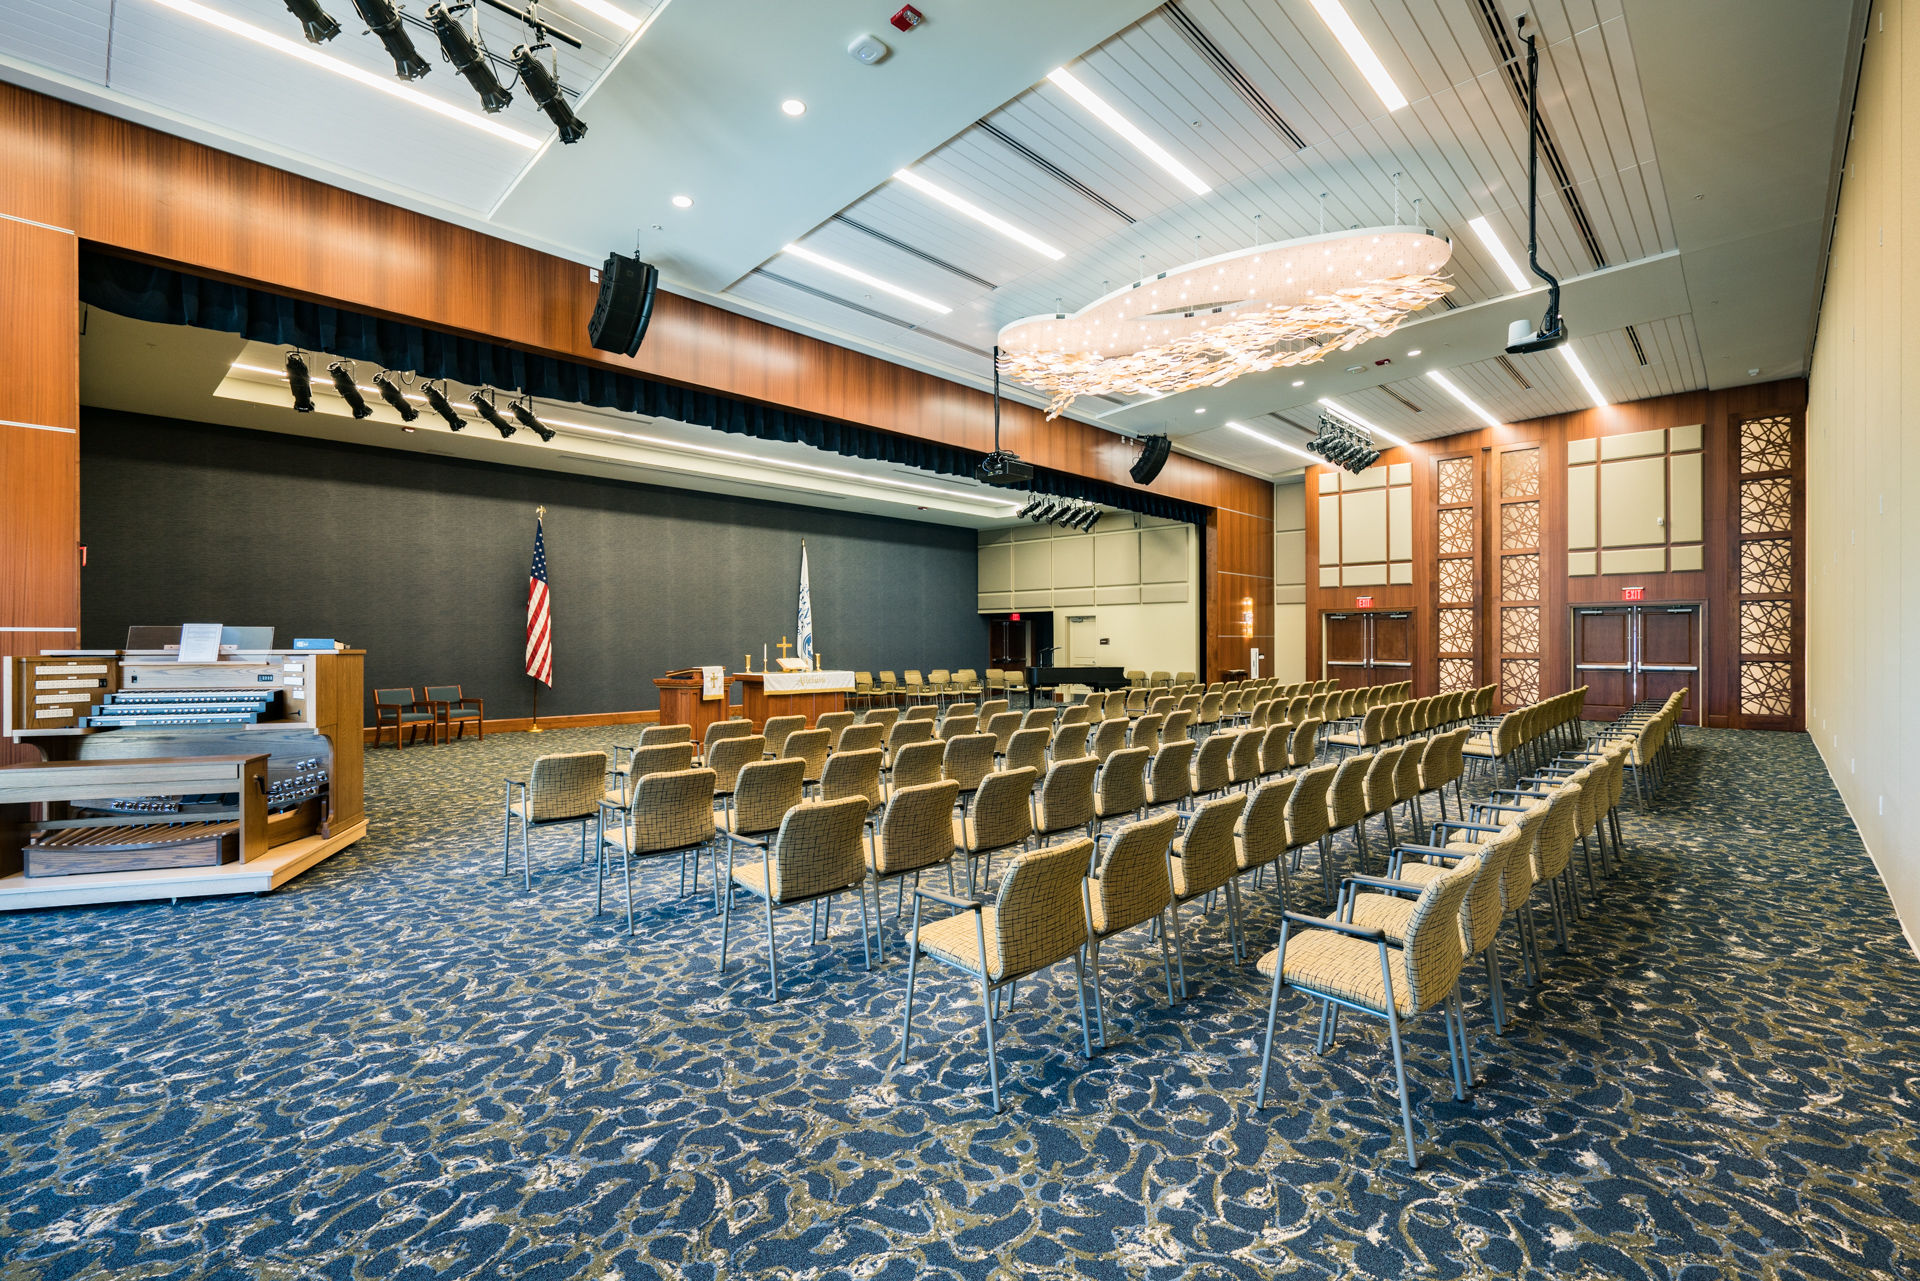 Rife Center Mechanicsburg Pennsylvania stage auditorium THW senior living architects